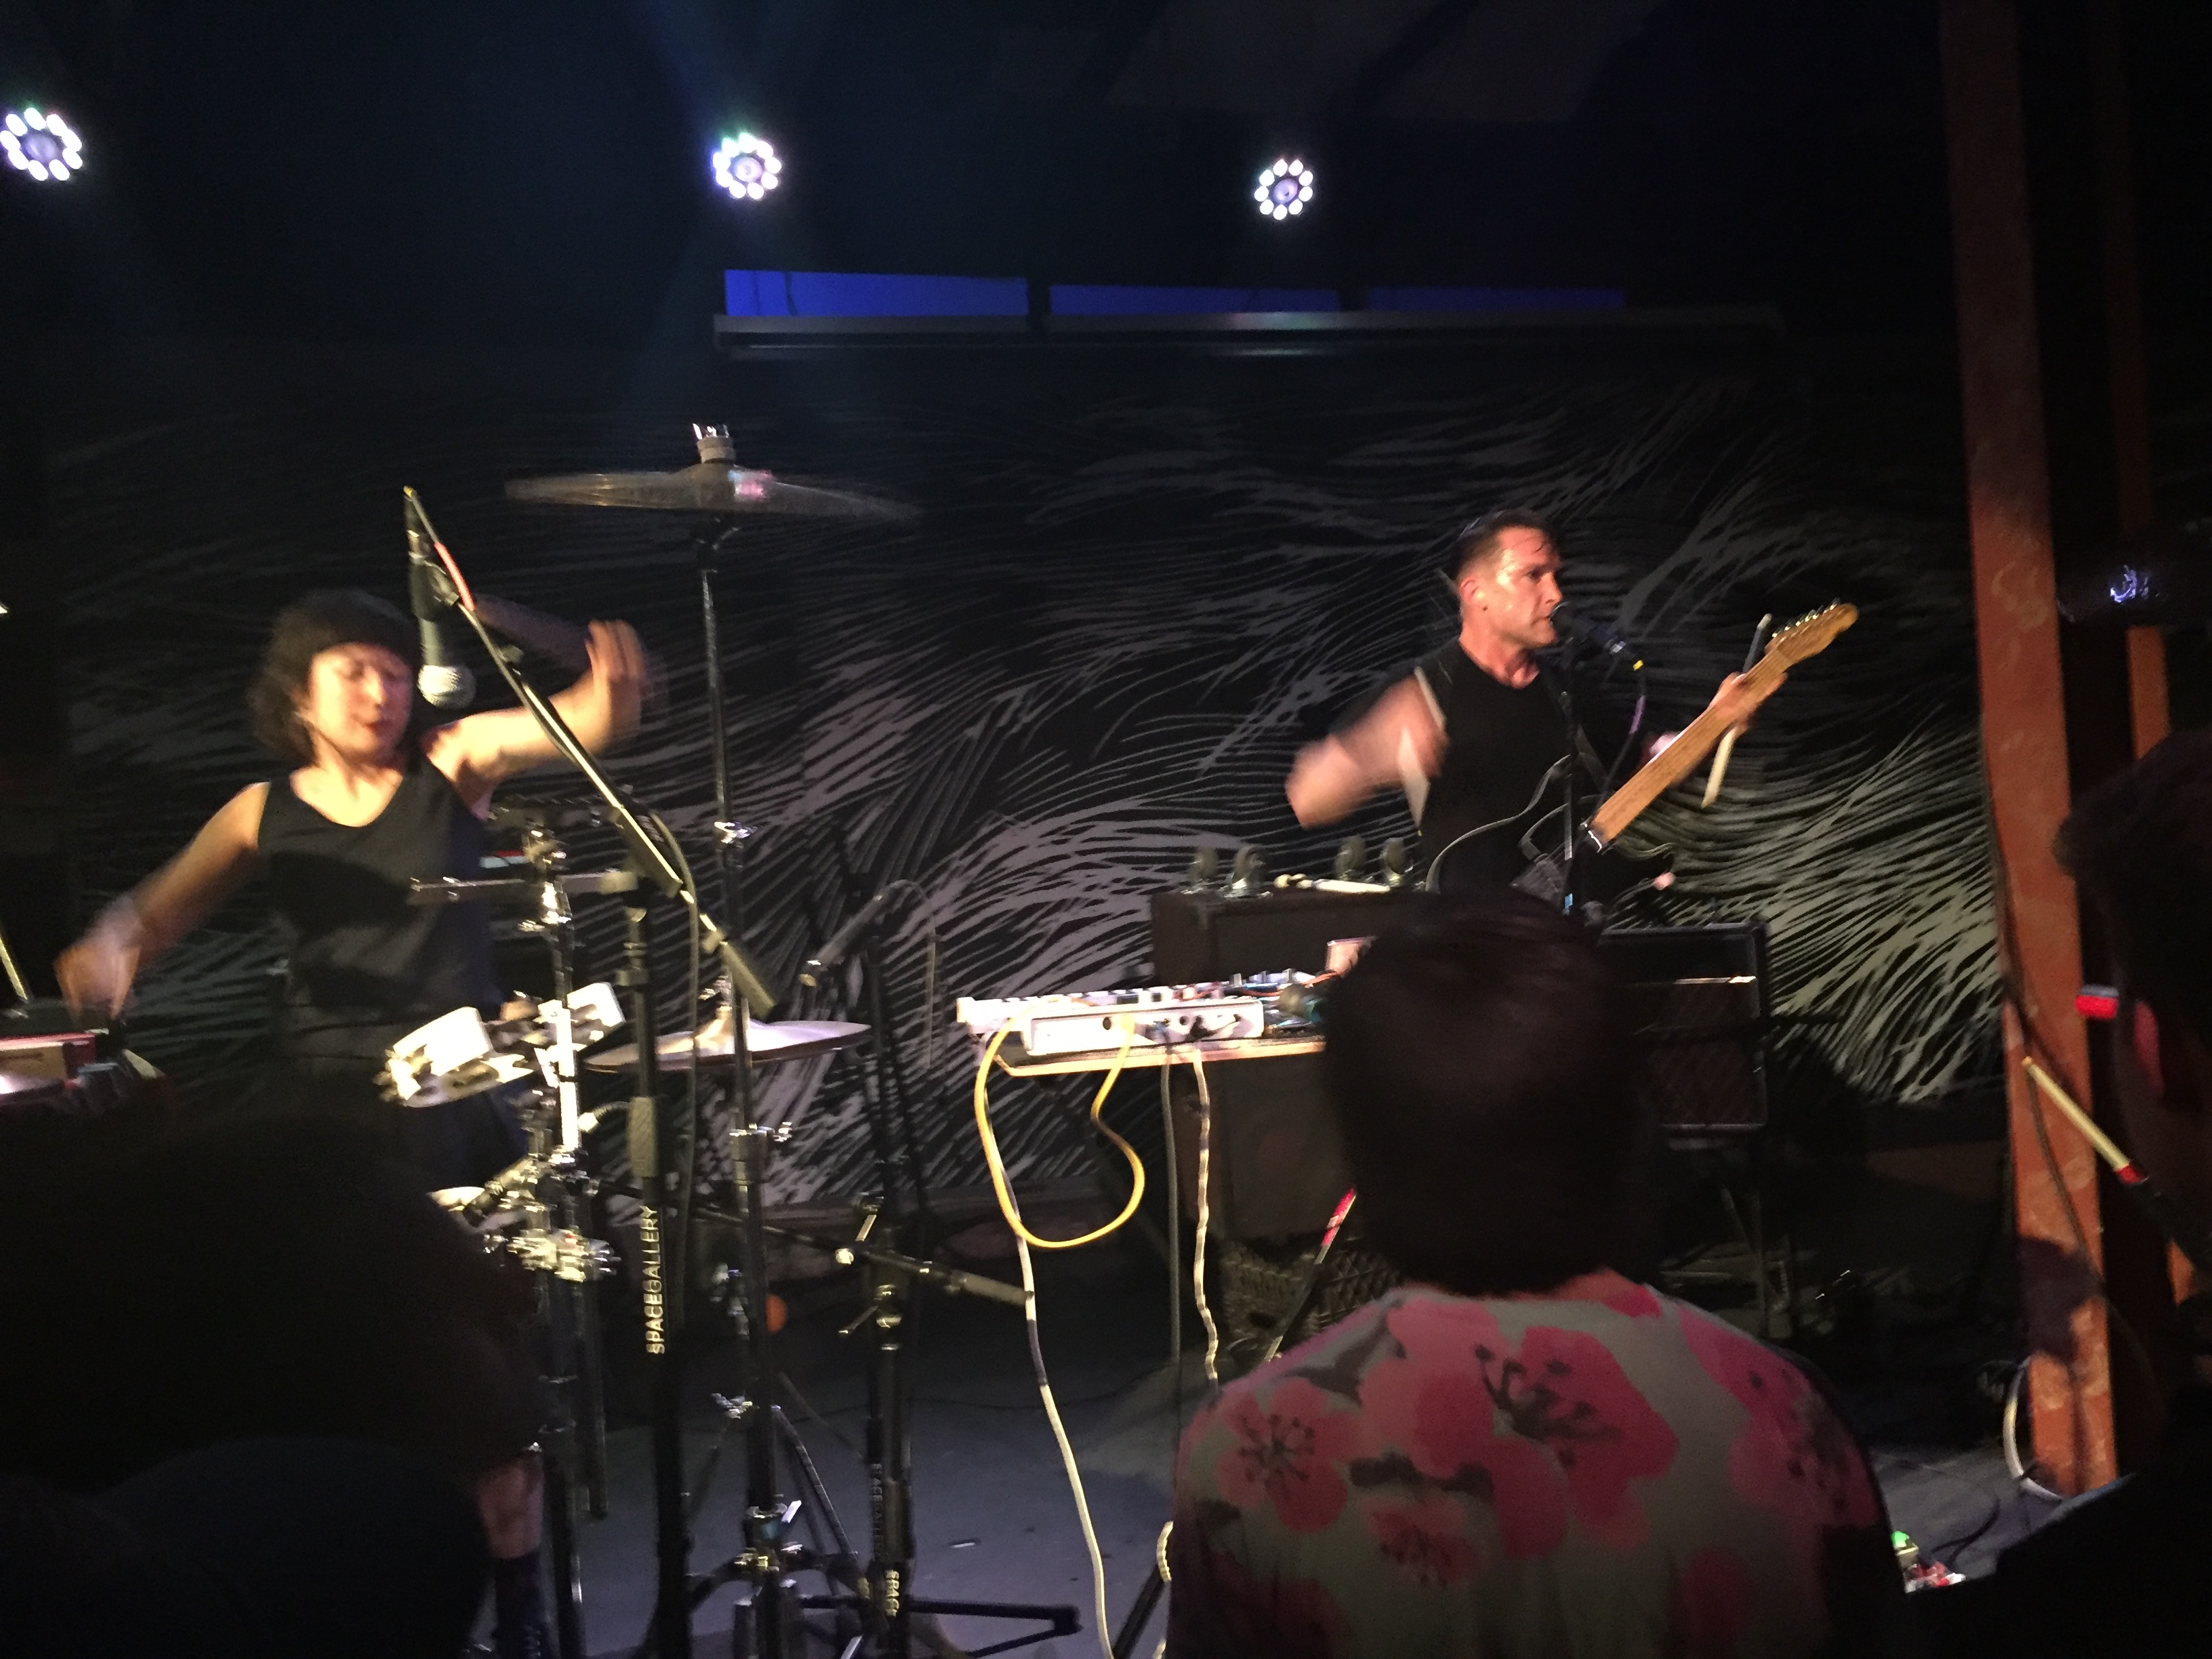 Xiu Xiu epitomizes emotional expression in the new age of music